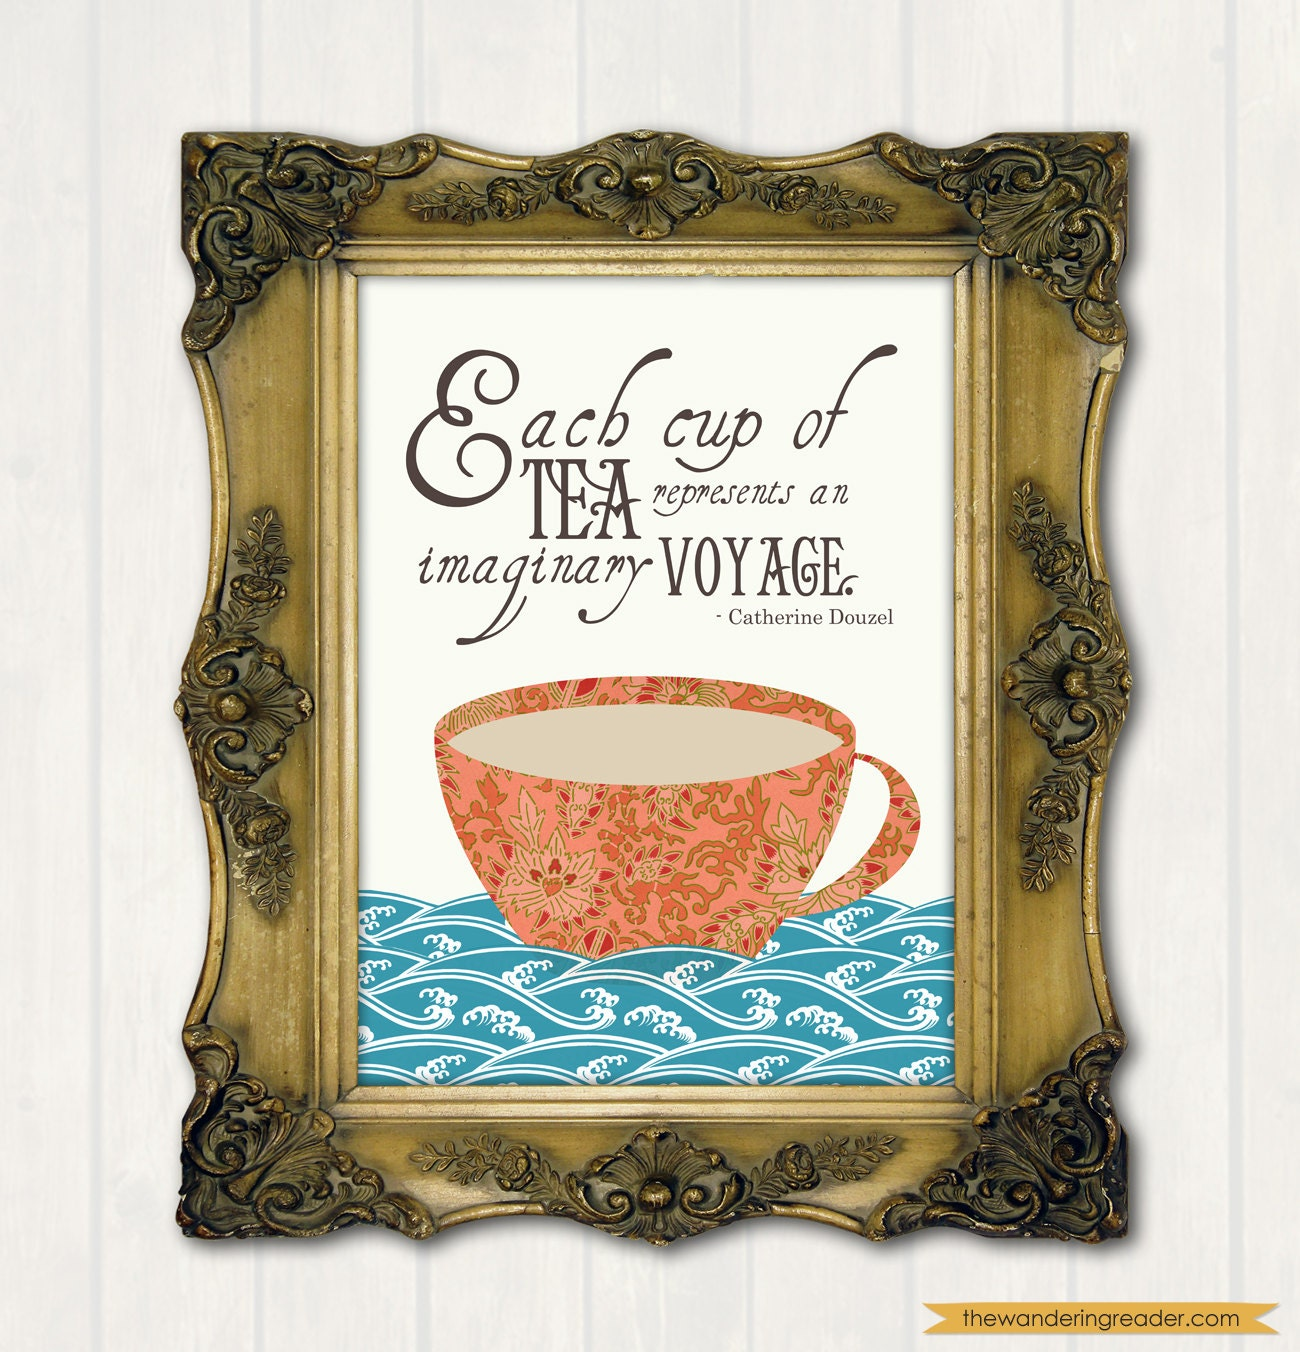 """Tea Quote Print with Inspirational """"Each cup of tea represents an imaginary voyage"""" Quotation and Teacup Illustration"""